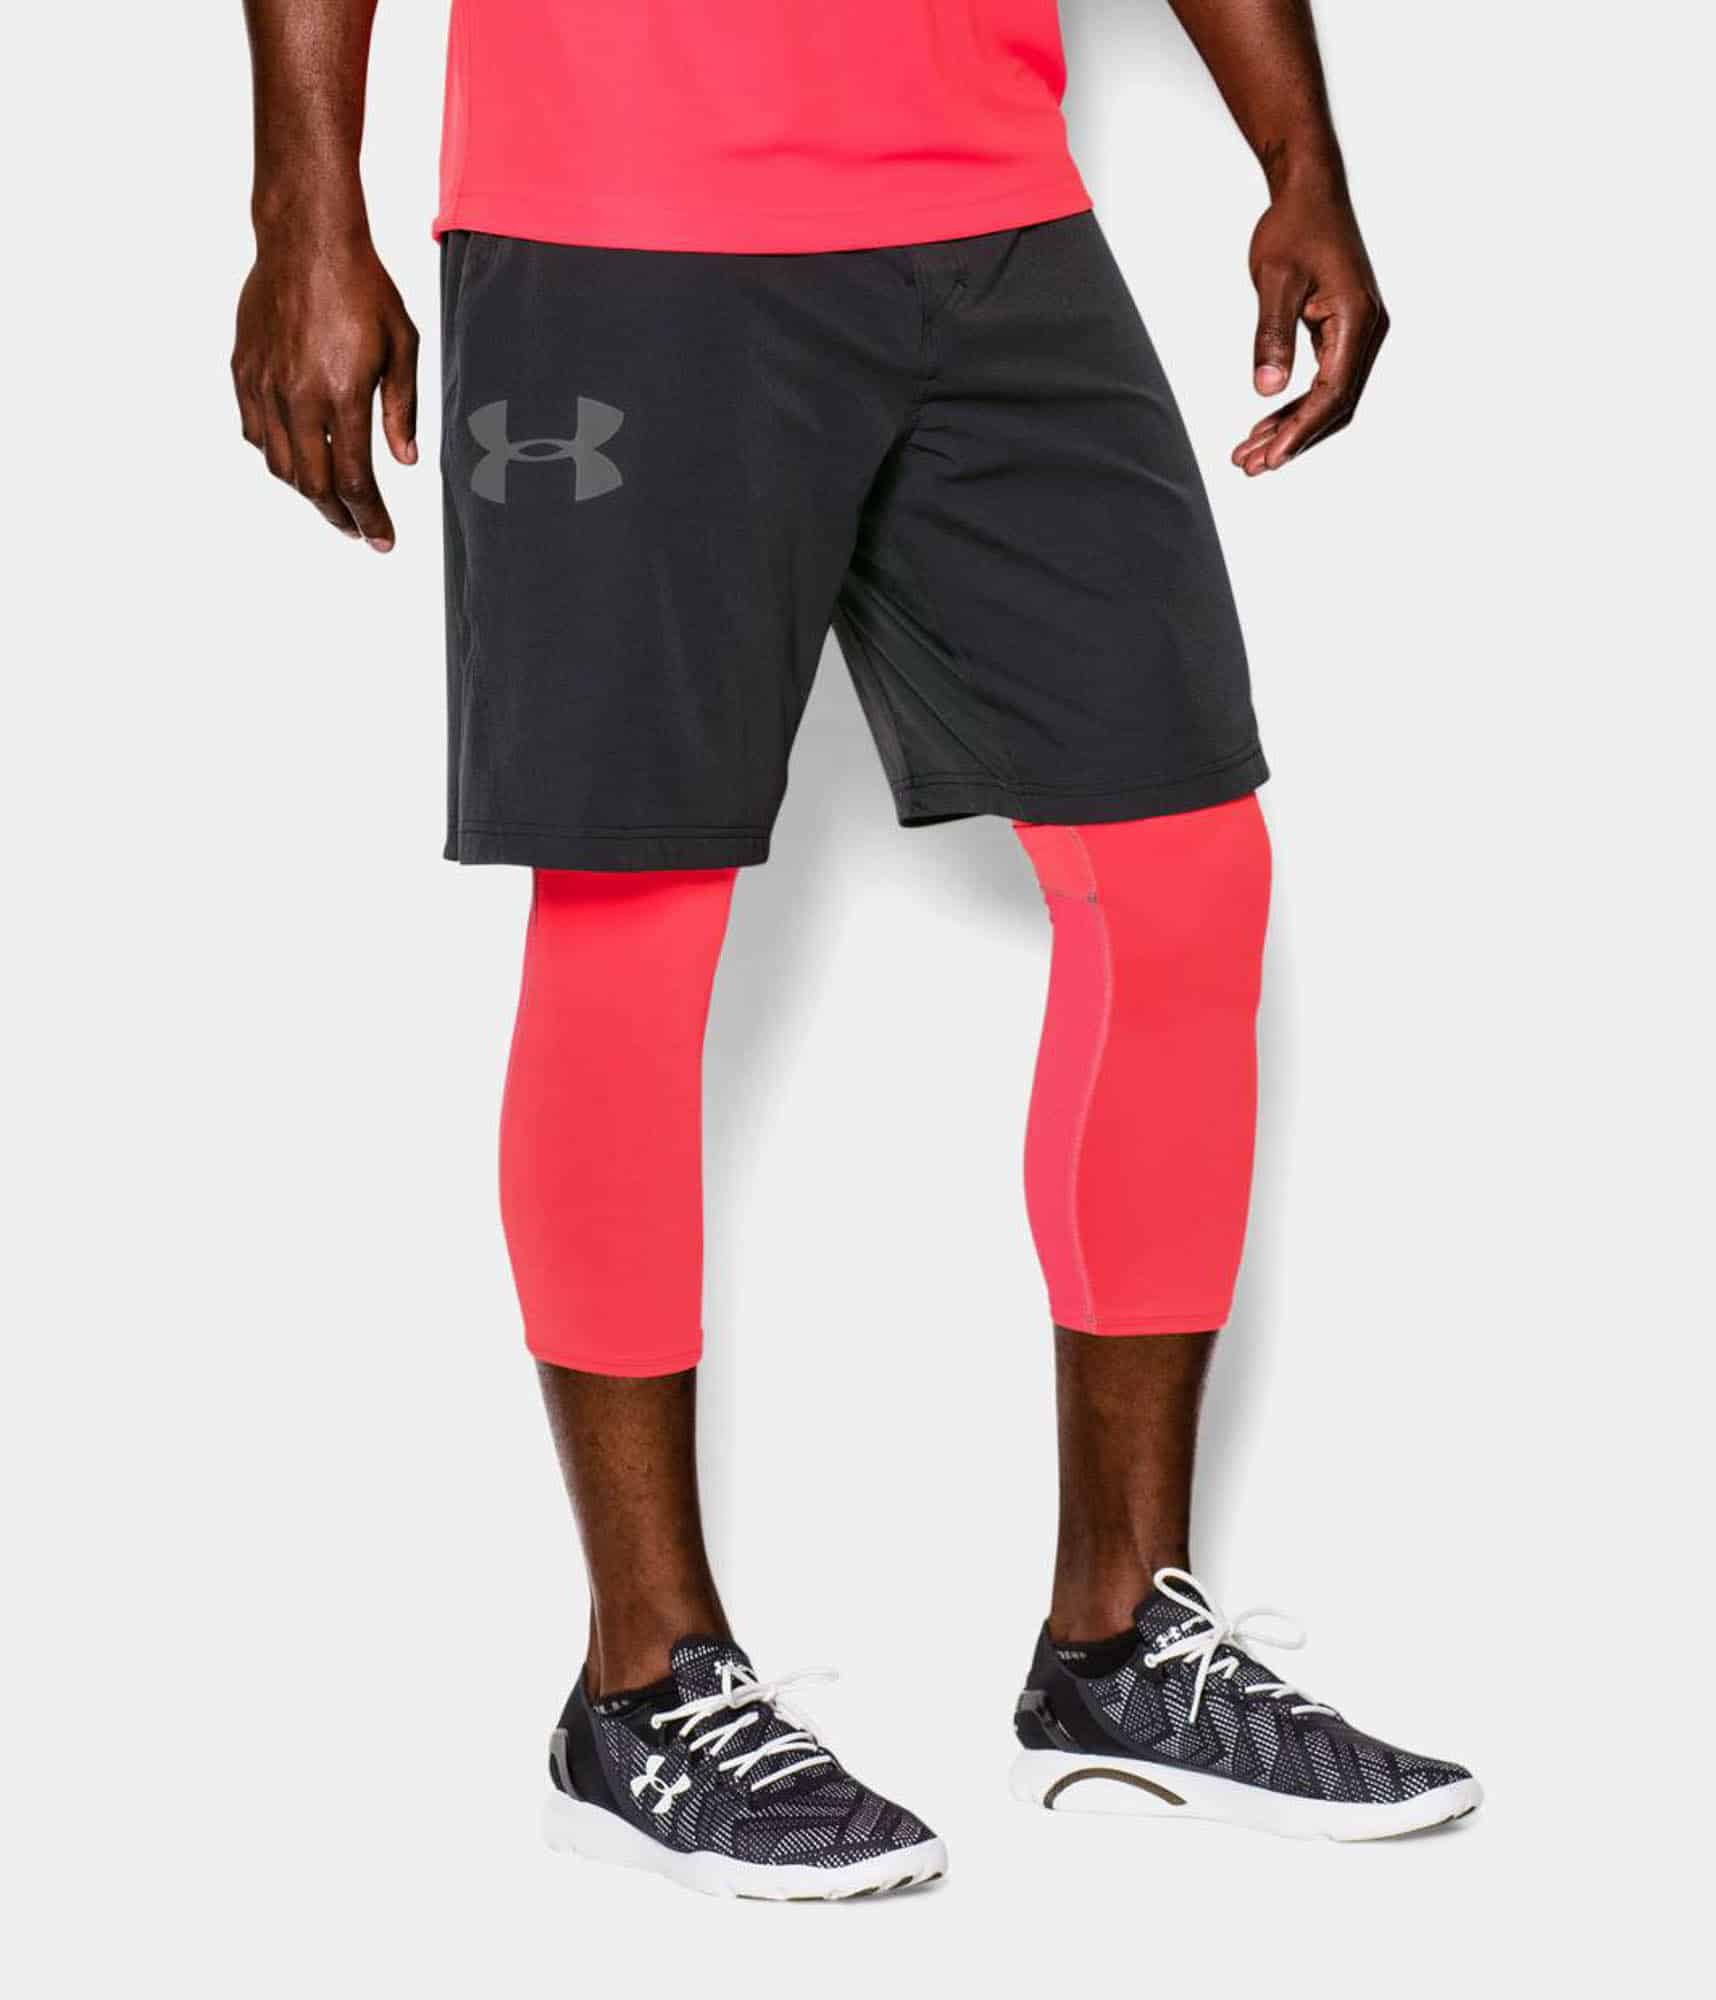 Mens Shorts Guide For Summer Gentlemans Gazette Tendencies Navy Chinos Short 30 Underarmour Athletes Have Moisture Wicking Fabric